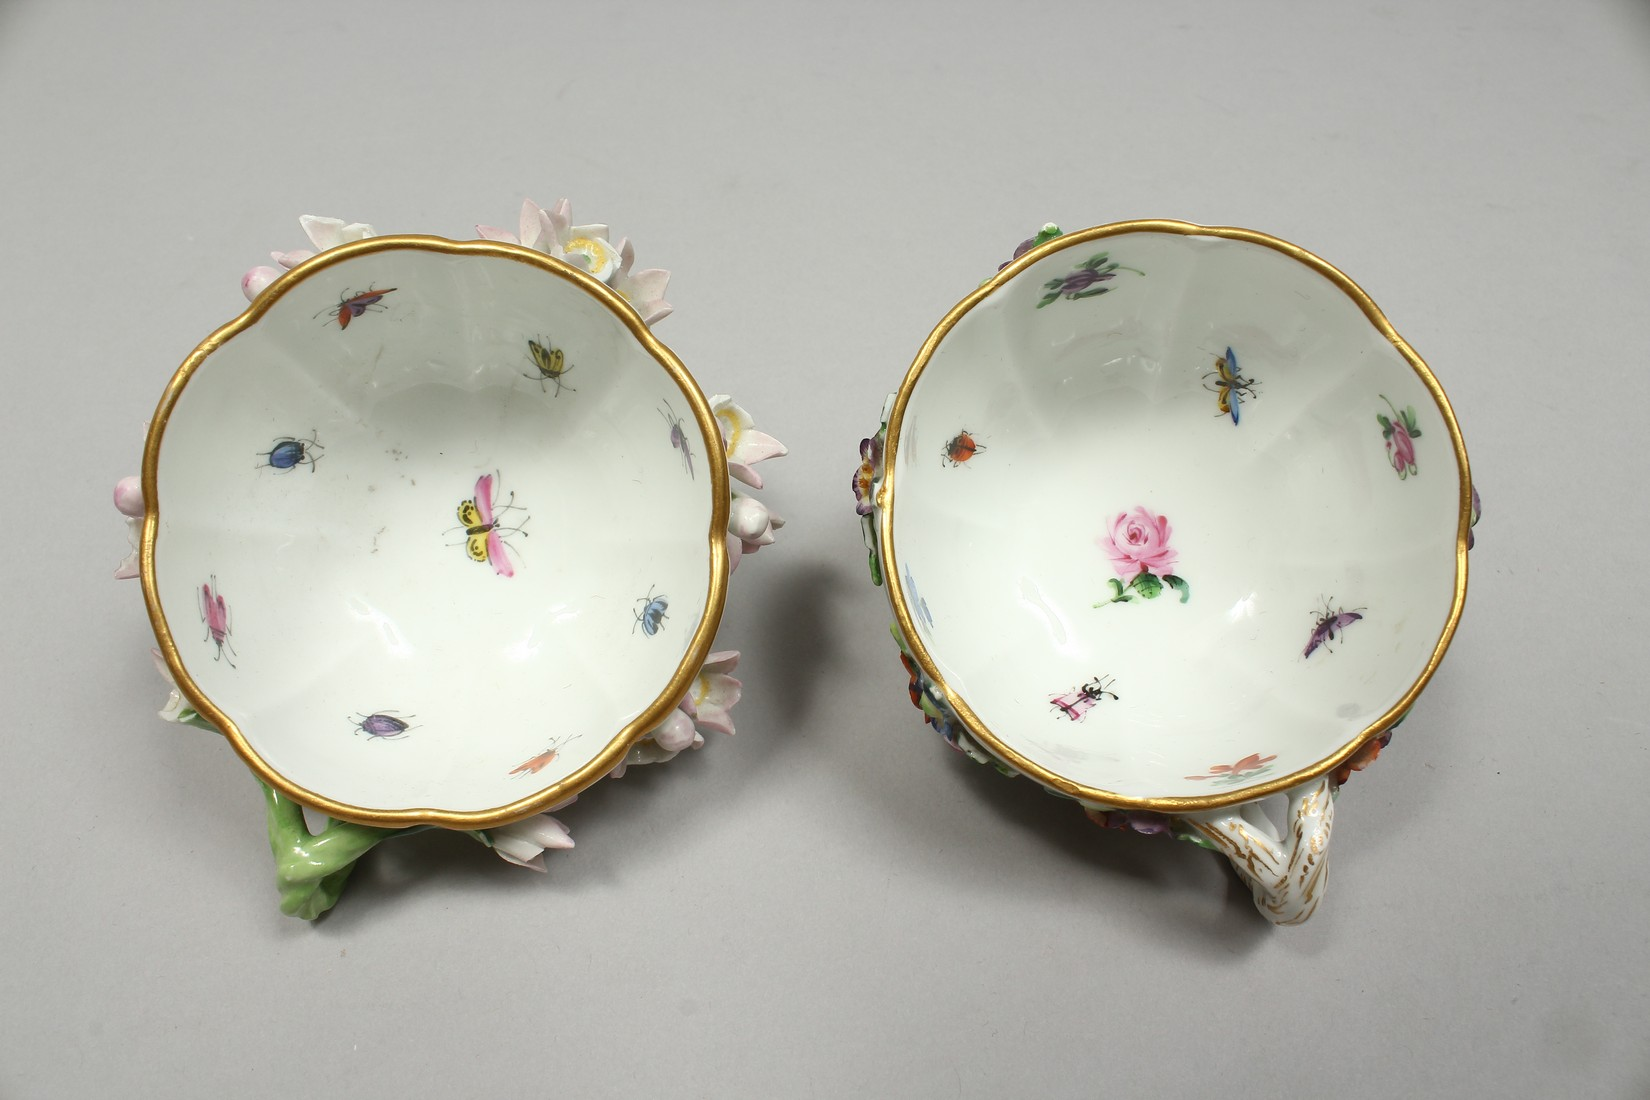 TWO MEISSEN PORCELAIN CUPS AND SAUCERS AND A SAUCER, encrusted with flowers and painted with - Image 6 of 16